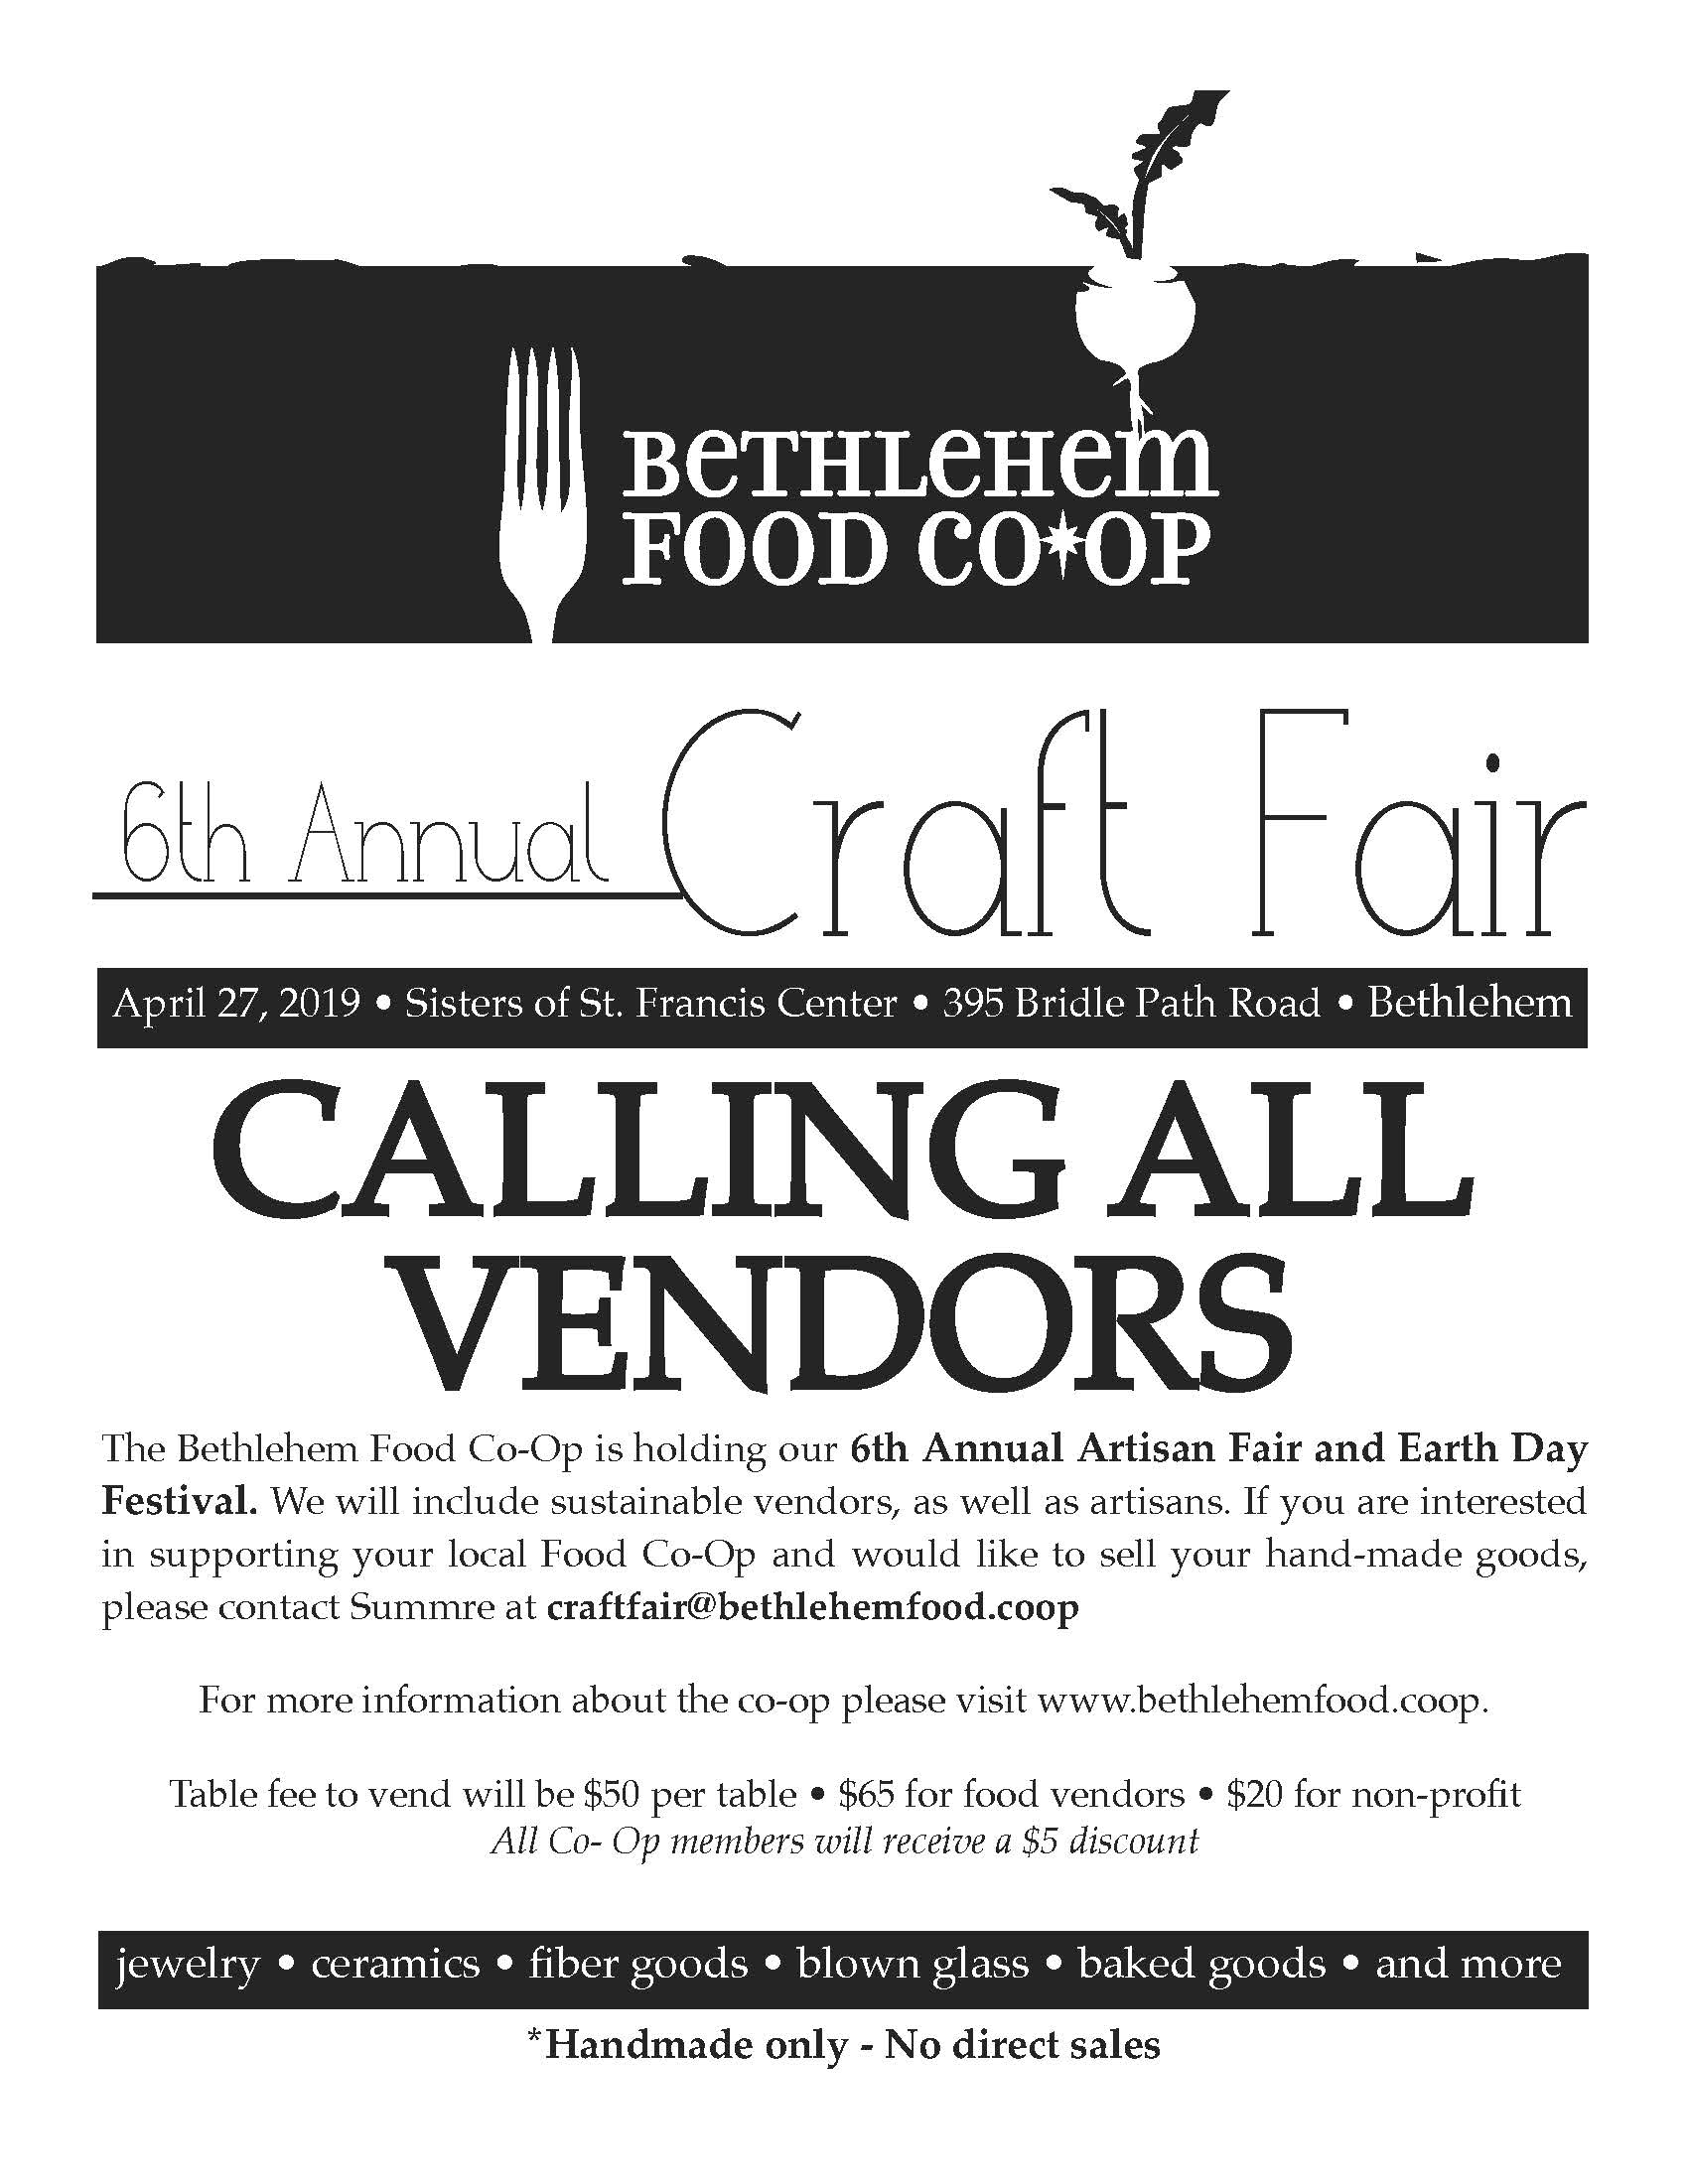 CALL FOR VENDORS:  The 6th Annual Artisan Fair & Earth Day Festival will include sustainable vendors and artisans. If you are interested in supporting your local food co-op and would like to sell your handmade goods, please contact Summre at craftfair@bethlehemfood.coop.   Table fee to vend will be $50 per table. $65 for food vendors. $20 for non-profit organizations. All Co-Op members will receive a $5 discount.   Jewelry • Ceramics • Fiber Goods • Blown Glass • Baked Goods • And More!  Handmade only. No direct sales.